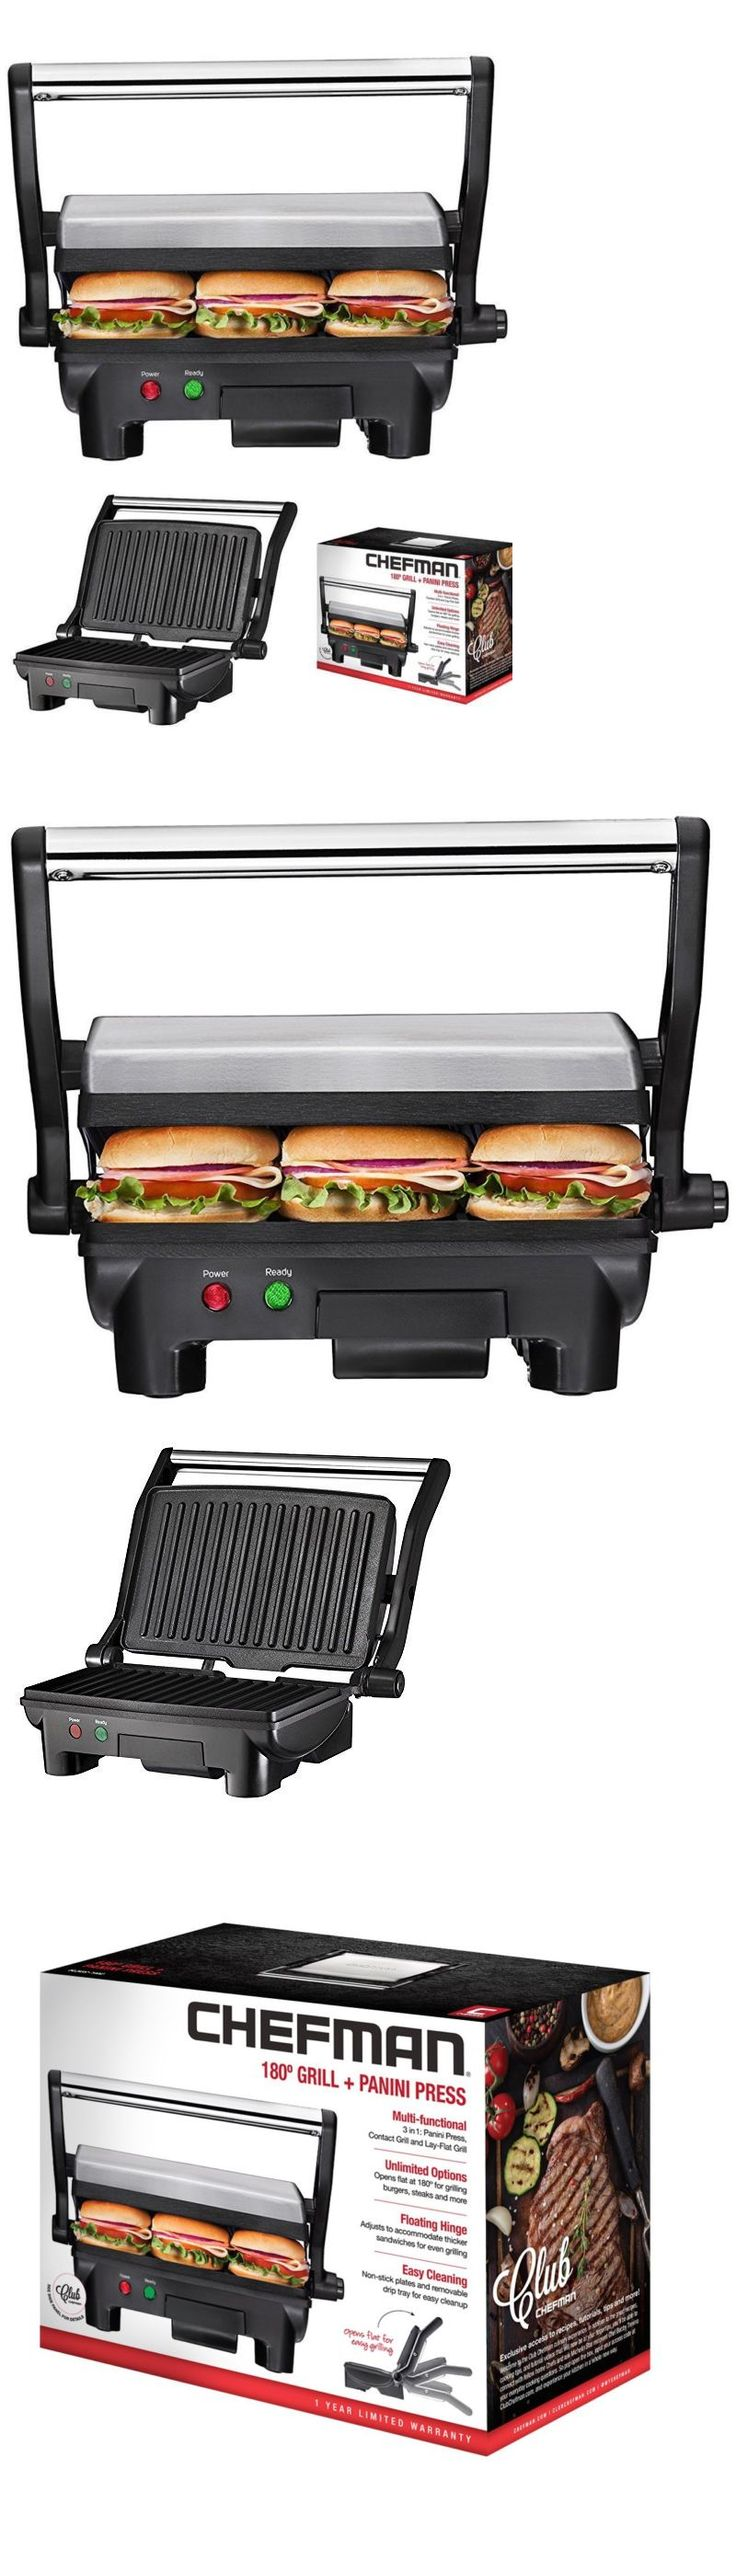 Uncategorized Small Electrical Kitchen Appliances best 25 small kitchen electrics ideas on pinterest electrical appliances panini maker sandwich press toaster breakfast electric stainless steel